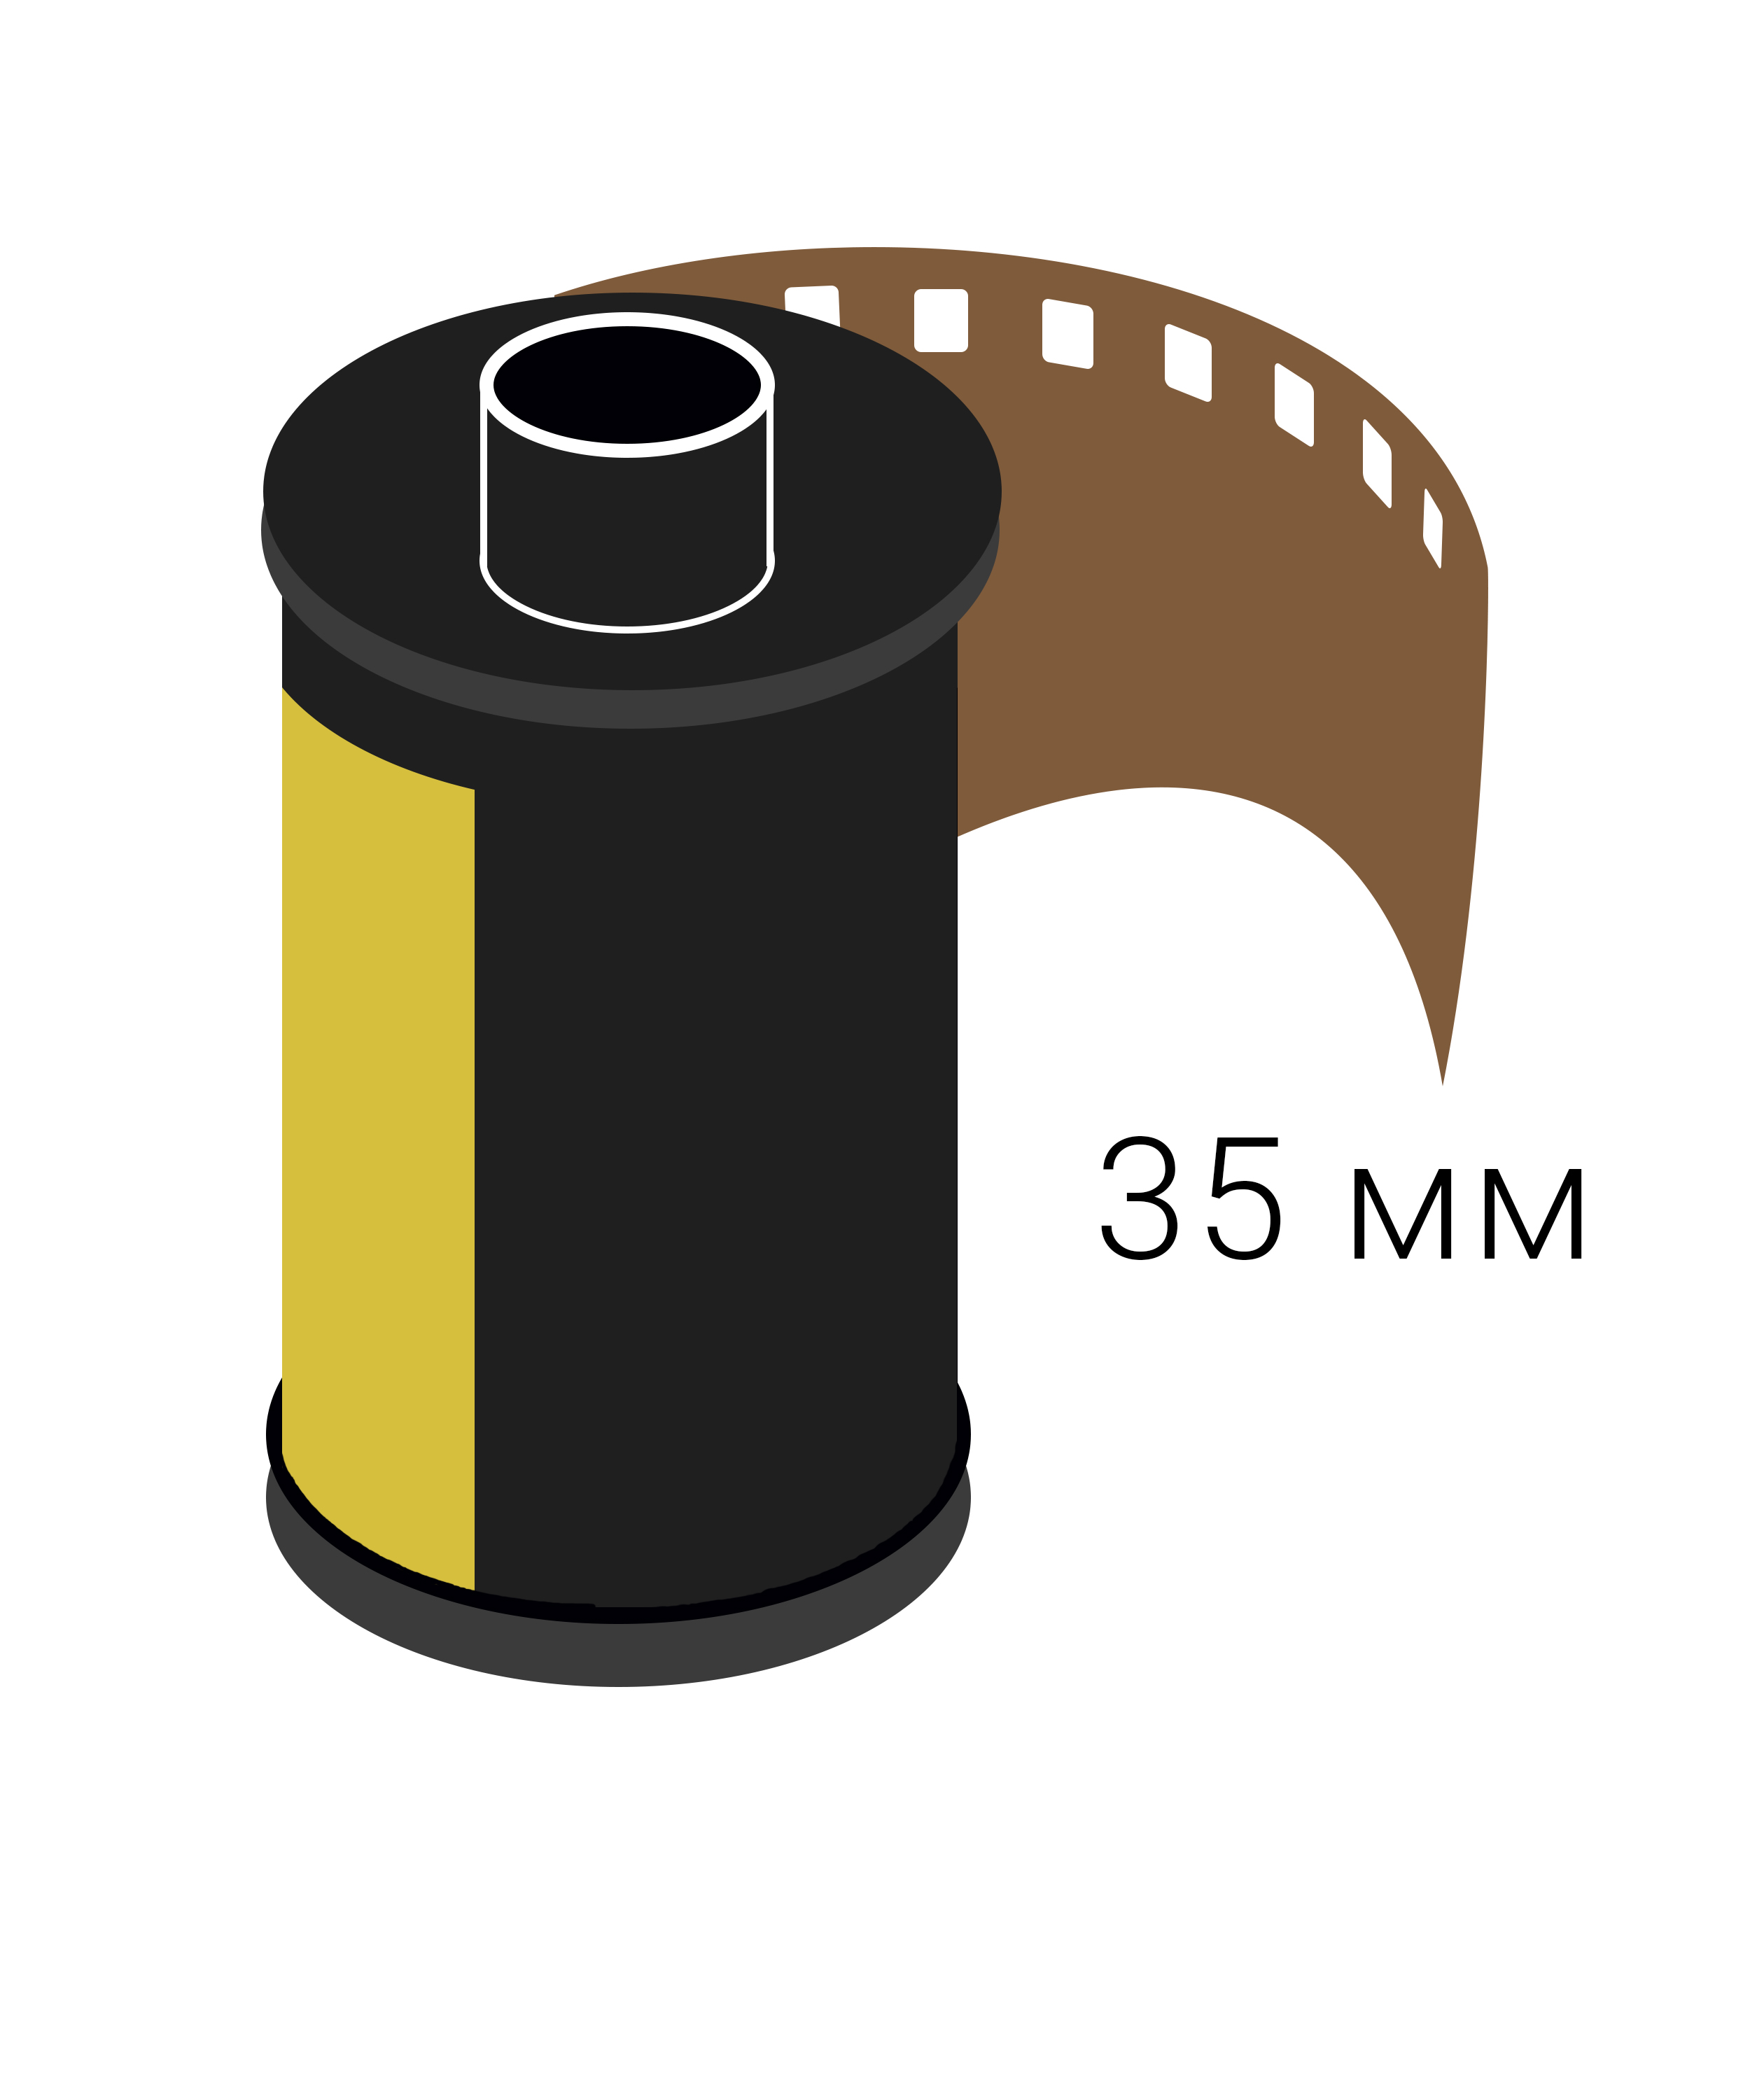 35mm_with_size.jpg